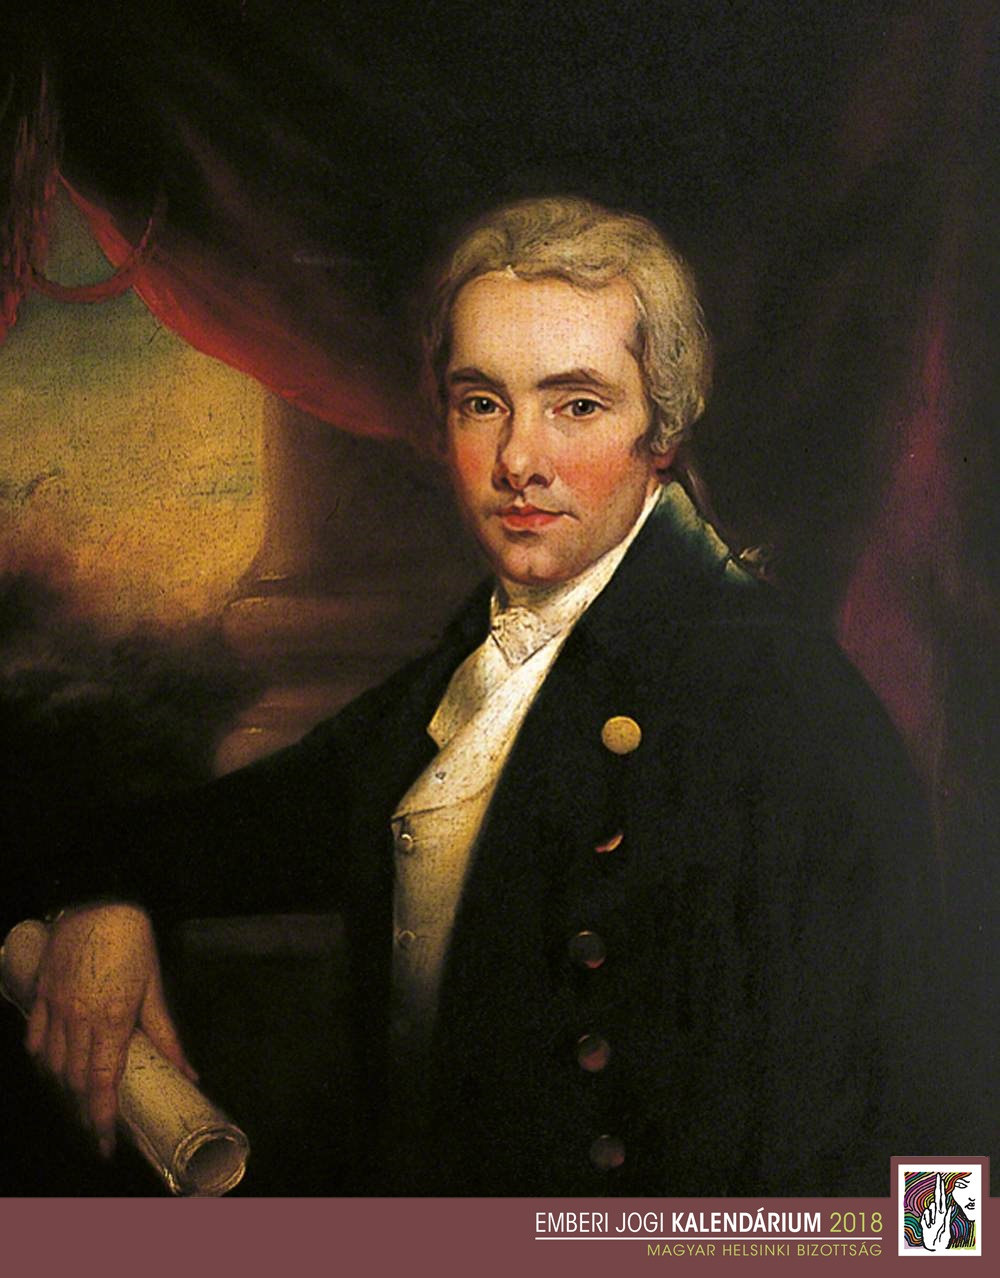 0824_wilberforce.jpg